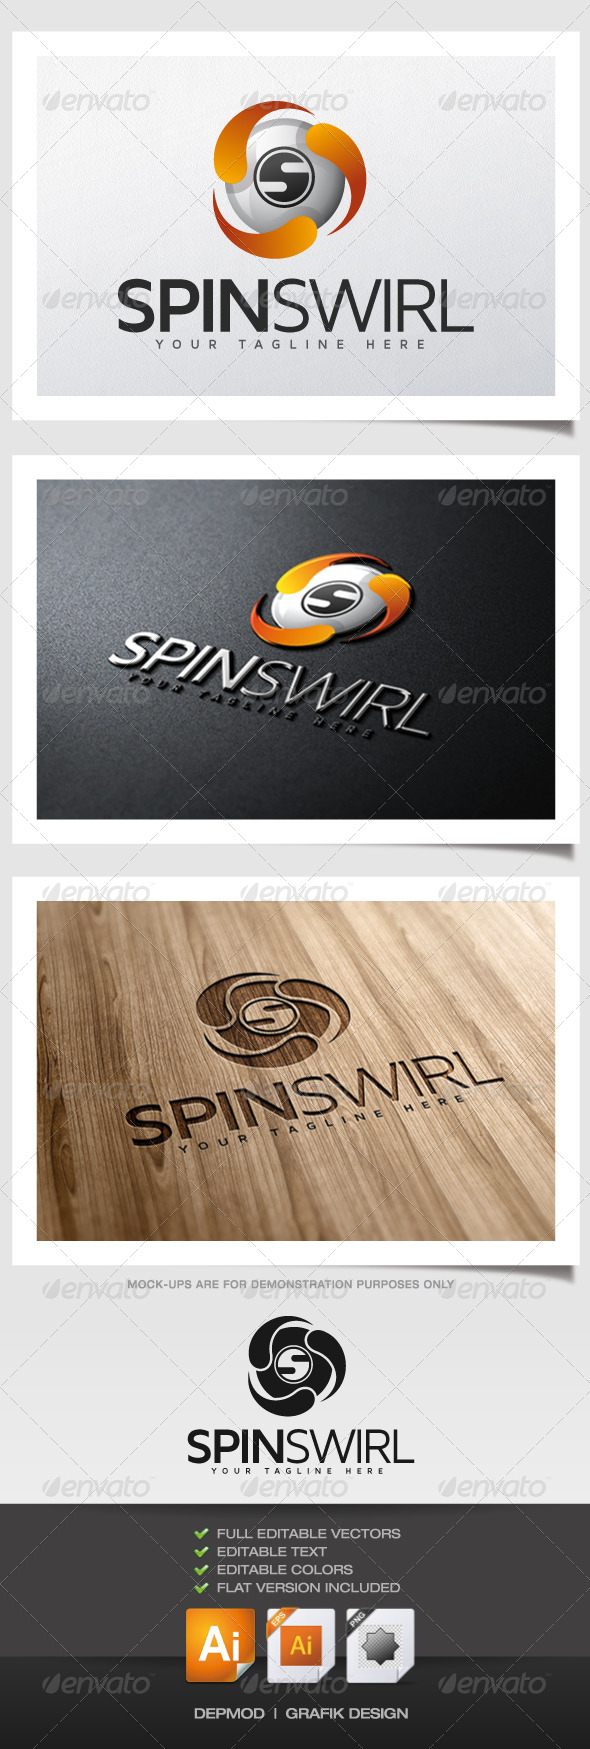 Spin Swirl Logo - Abstract Logo Templates